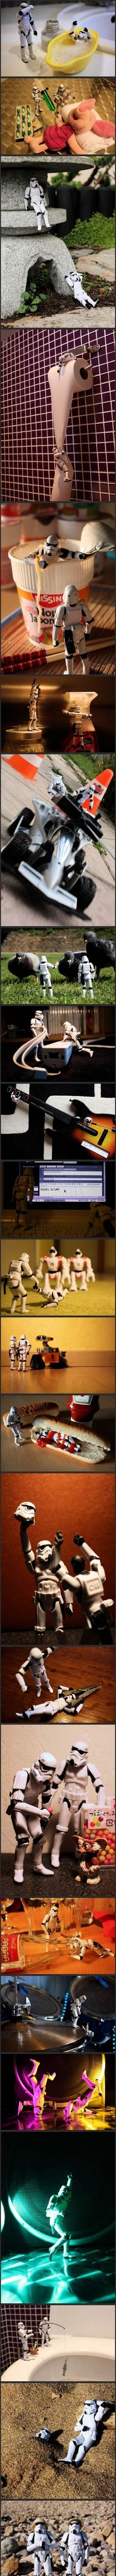 Storm troopers - A day in the life.    Jahna Dooling, this reminds me of your twins!